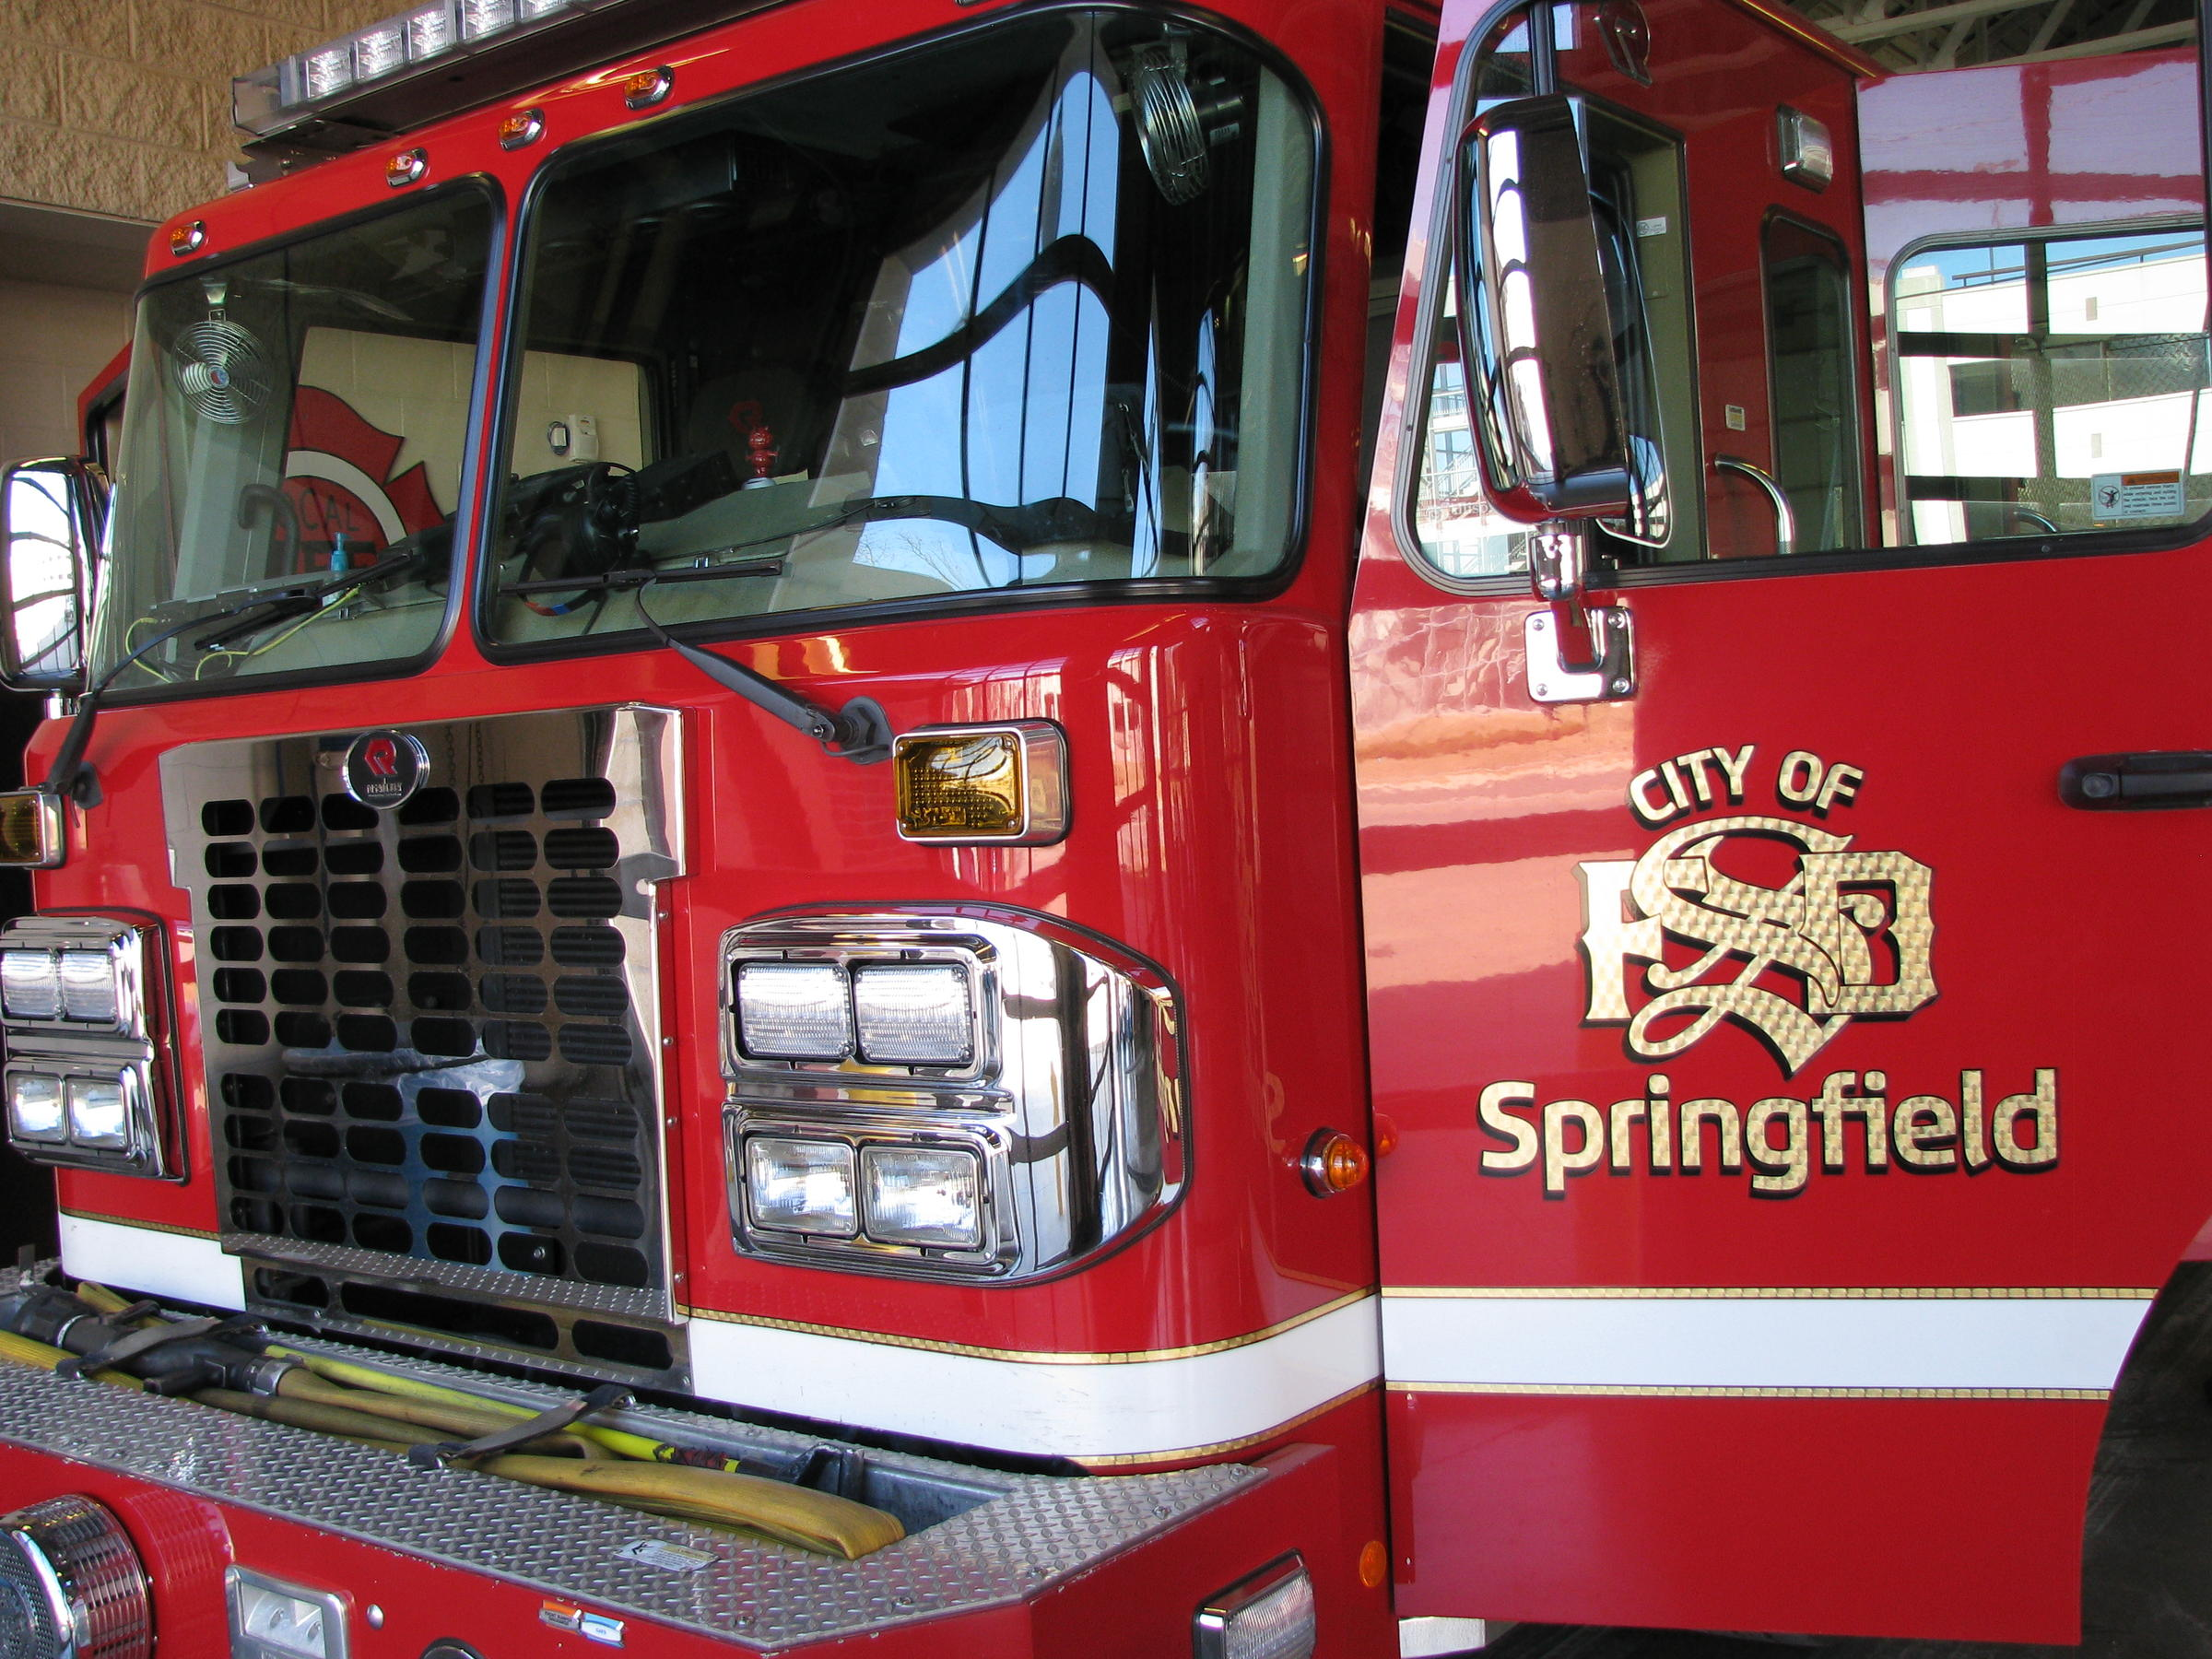 Springfield Fire Department Receives Grant to Add Members, Hopes to Build New Station